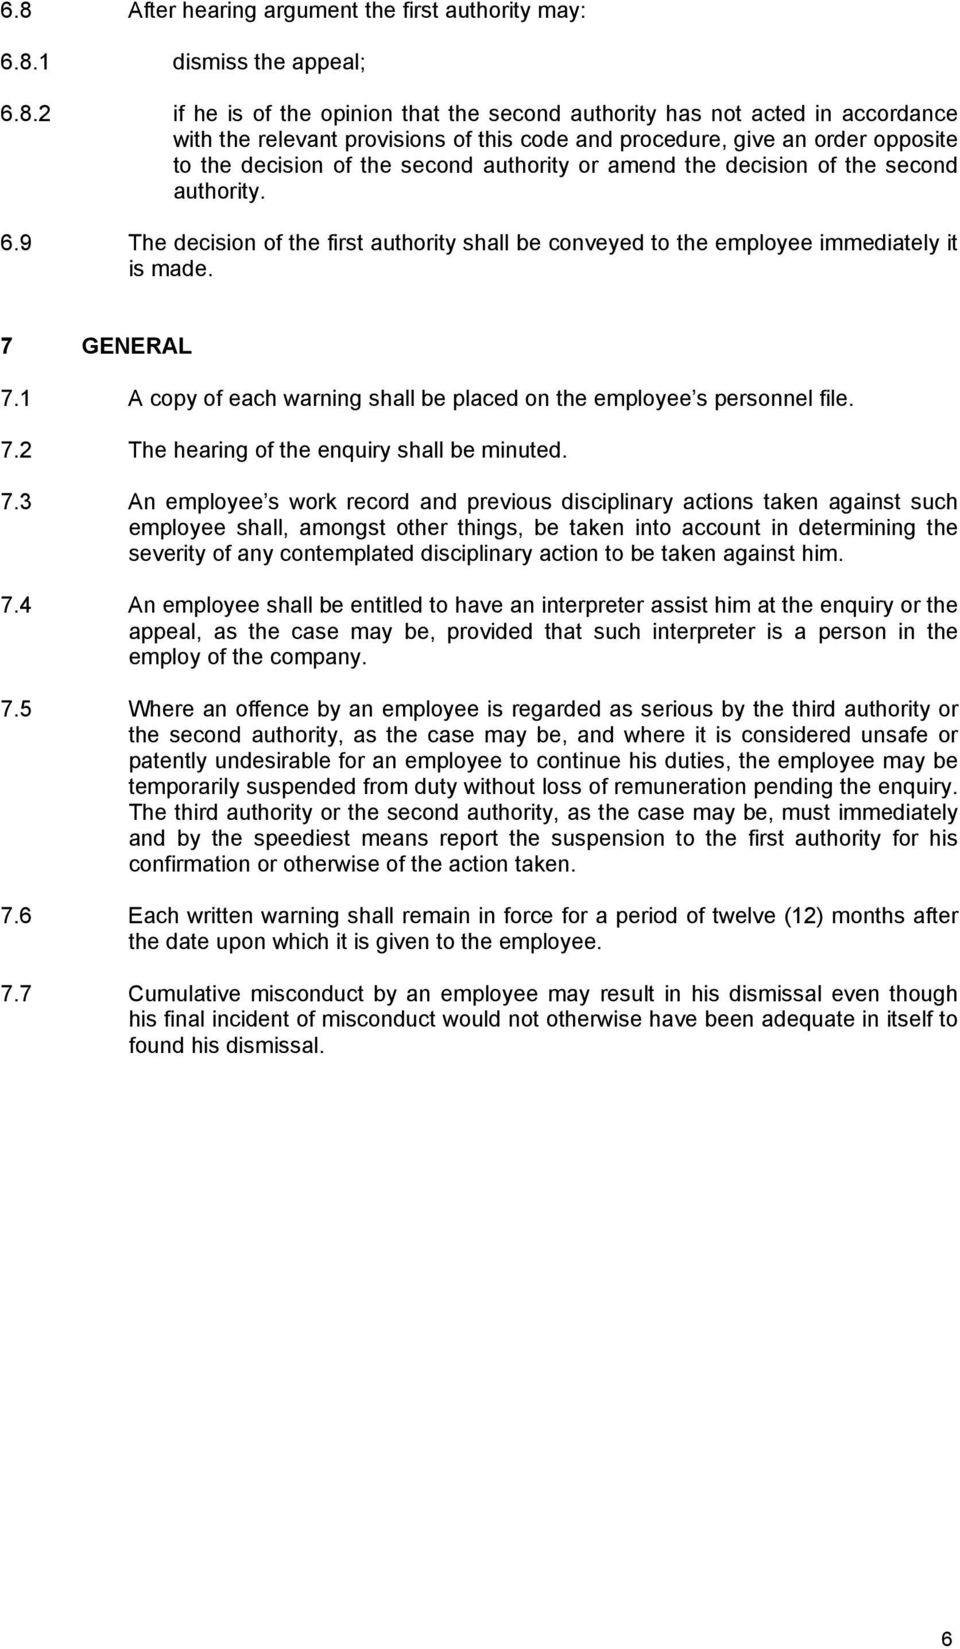 9 The decision of the first authority shall be conveyed to the employee immediately it is made. 7 GENERAL 7.1 A copy of each warning shall be placed on the employee s personnel file. 7.2 The hearing of the enquiry shall be minuted.